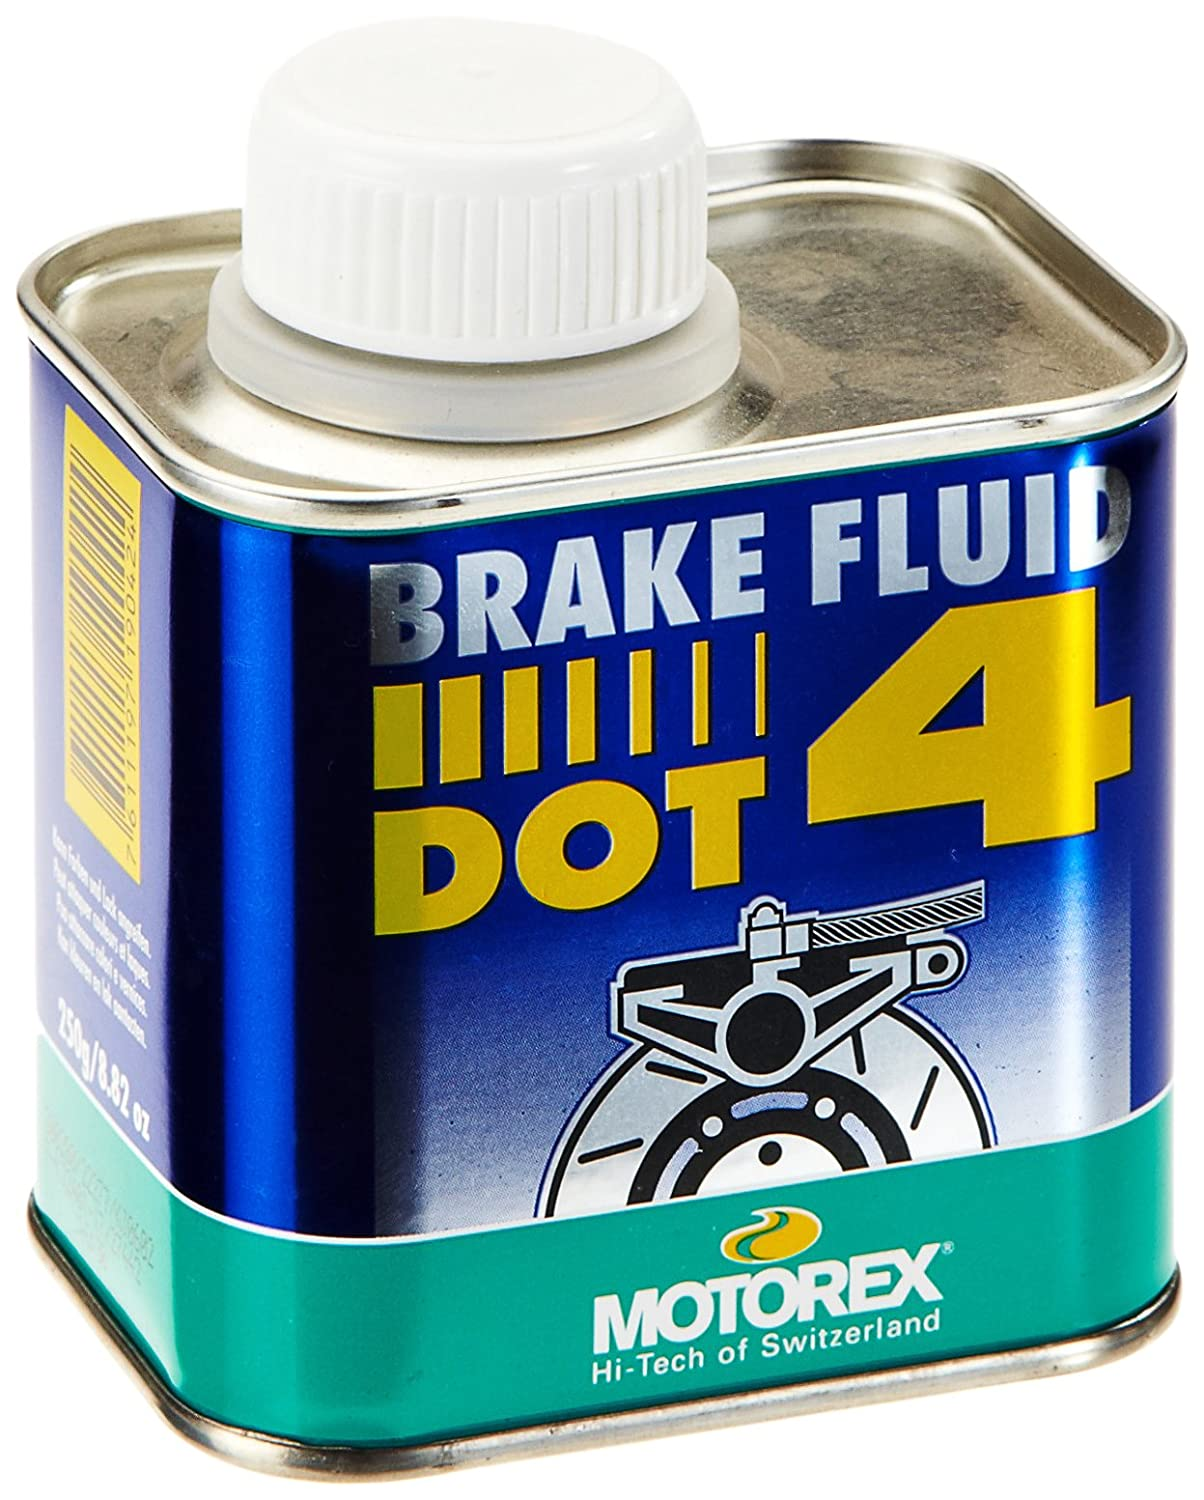 MOUNTAIN MOTOREX liquide de frein DOT4  –   Bleu, 0,25  litres 25 litres Integrated Supply Network - Do Not Use 82.100802